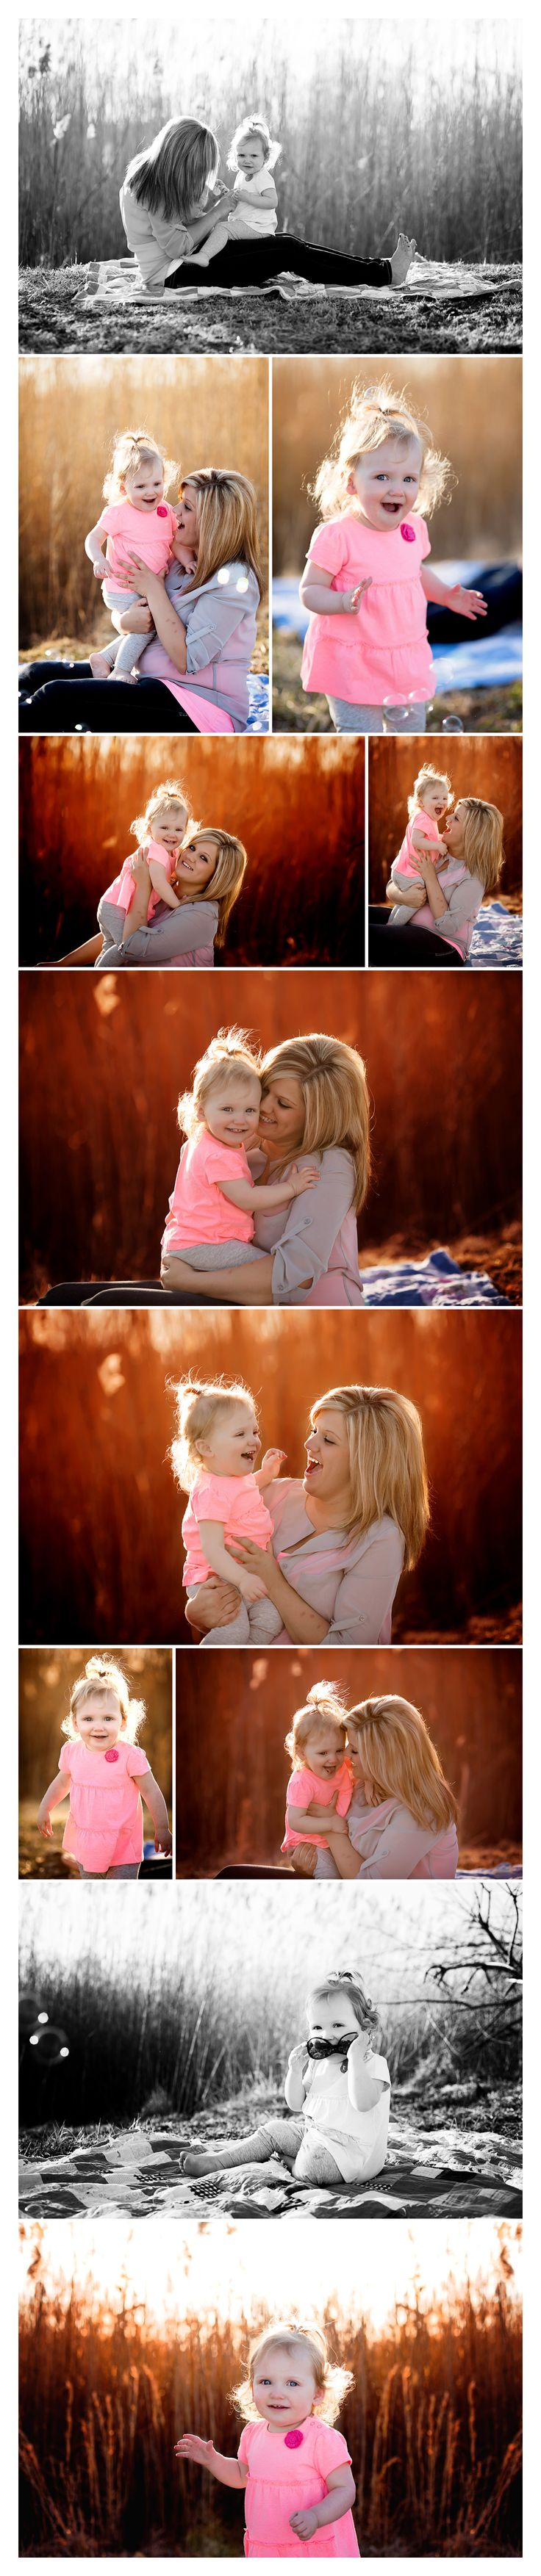 Mother daughter photos | Family Photography | Mommy and me photo ideas | Julie Pottorff Photography